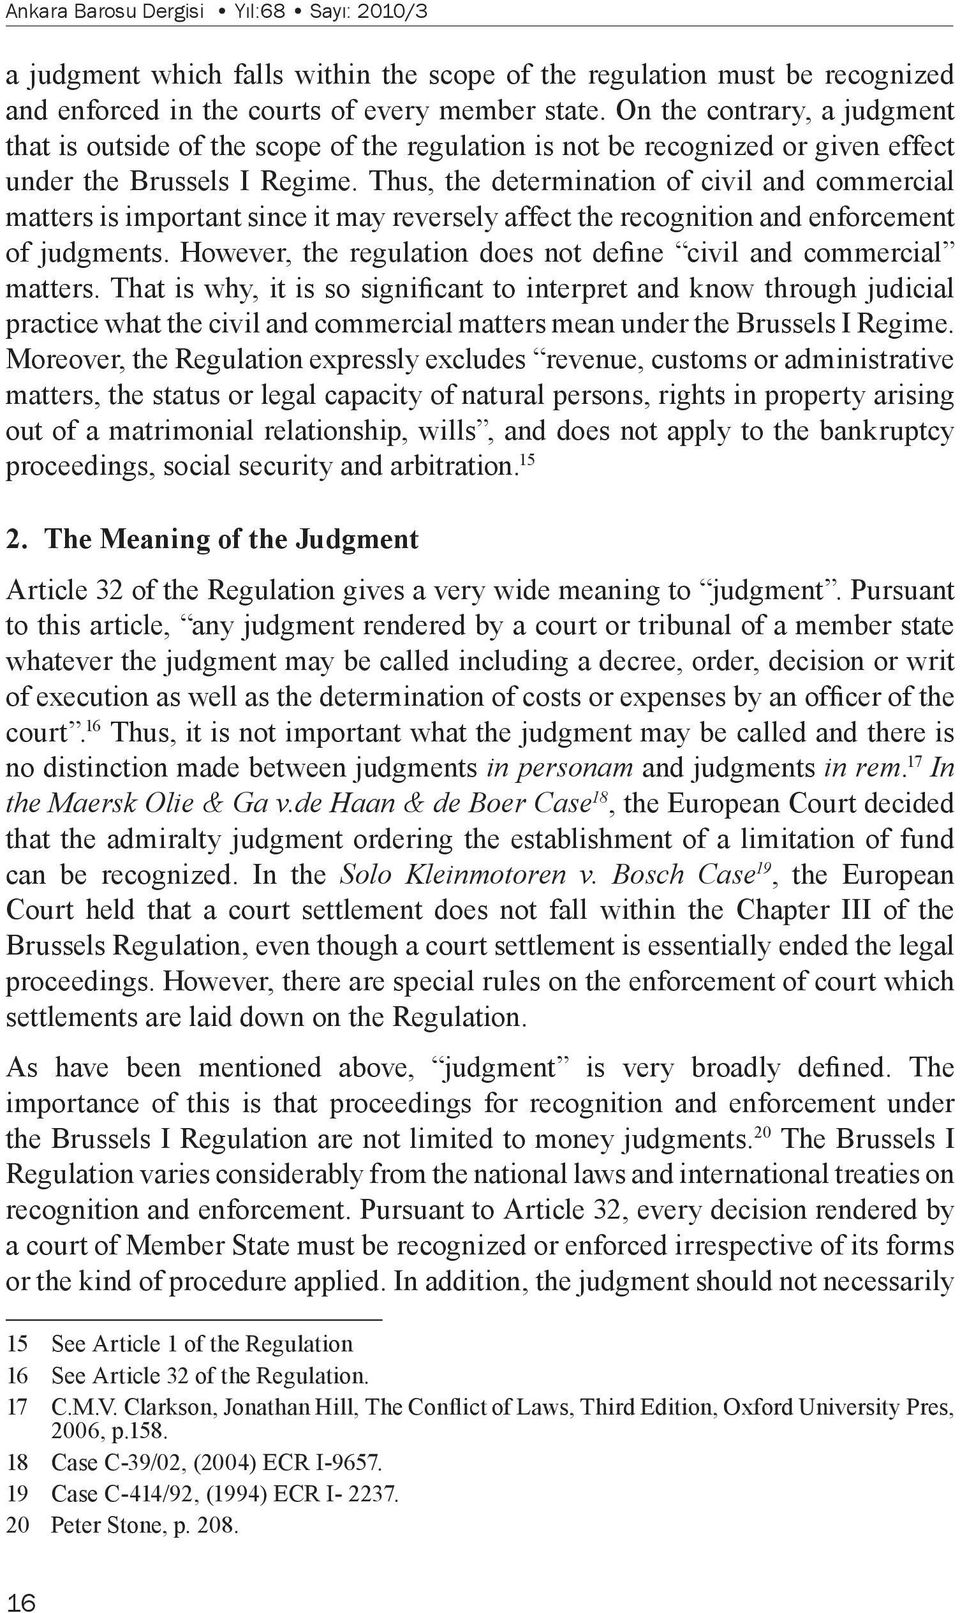 Thus, the determination of civil and commercial matters is important since it may reversely affect the recognition and enforcement of judgments.